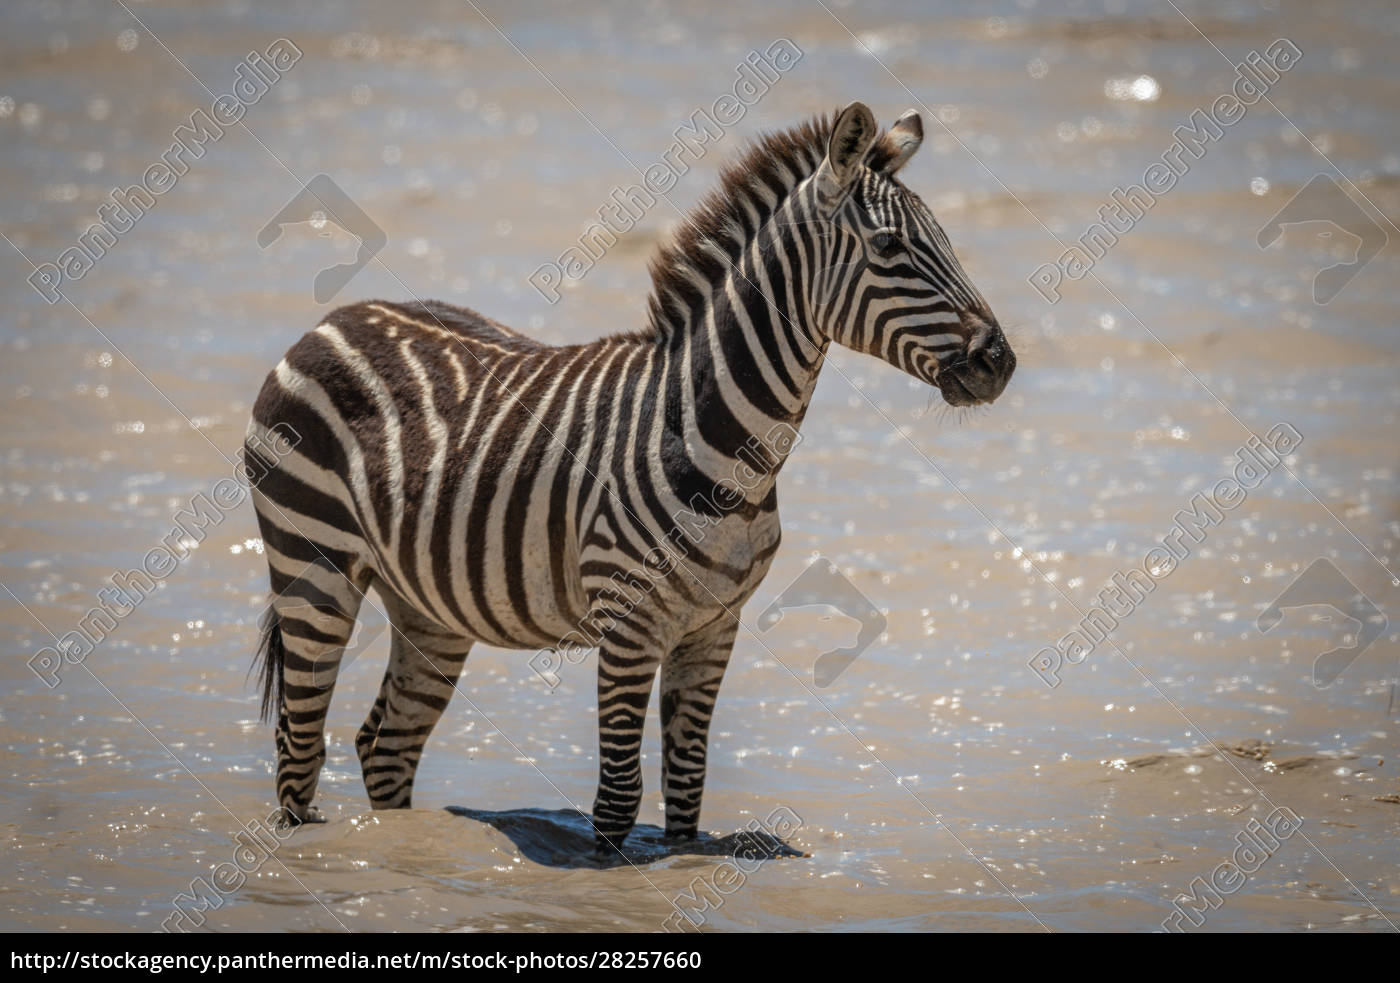 plains, zebra, stands, in, muddy, shallow - 28257660